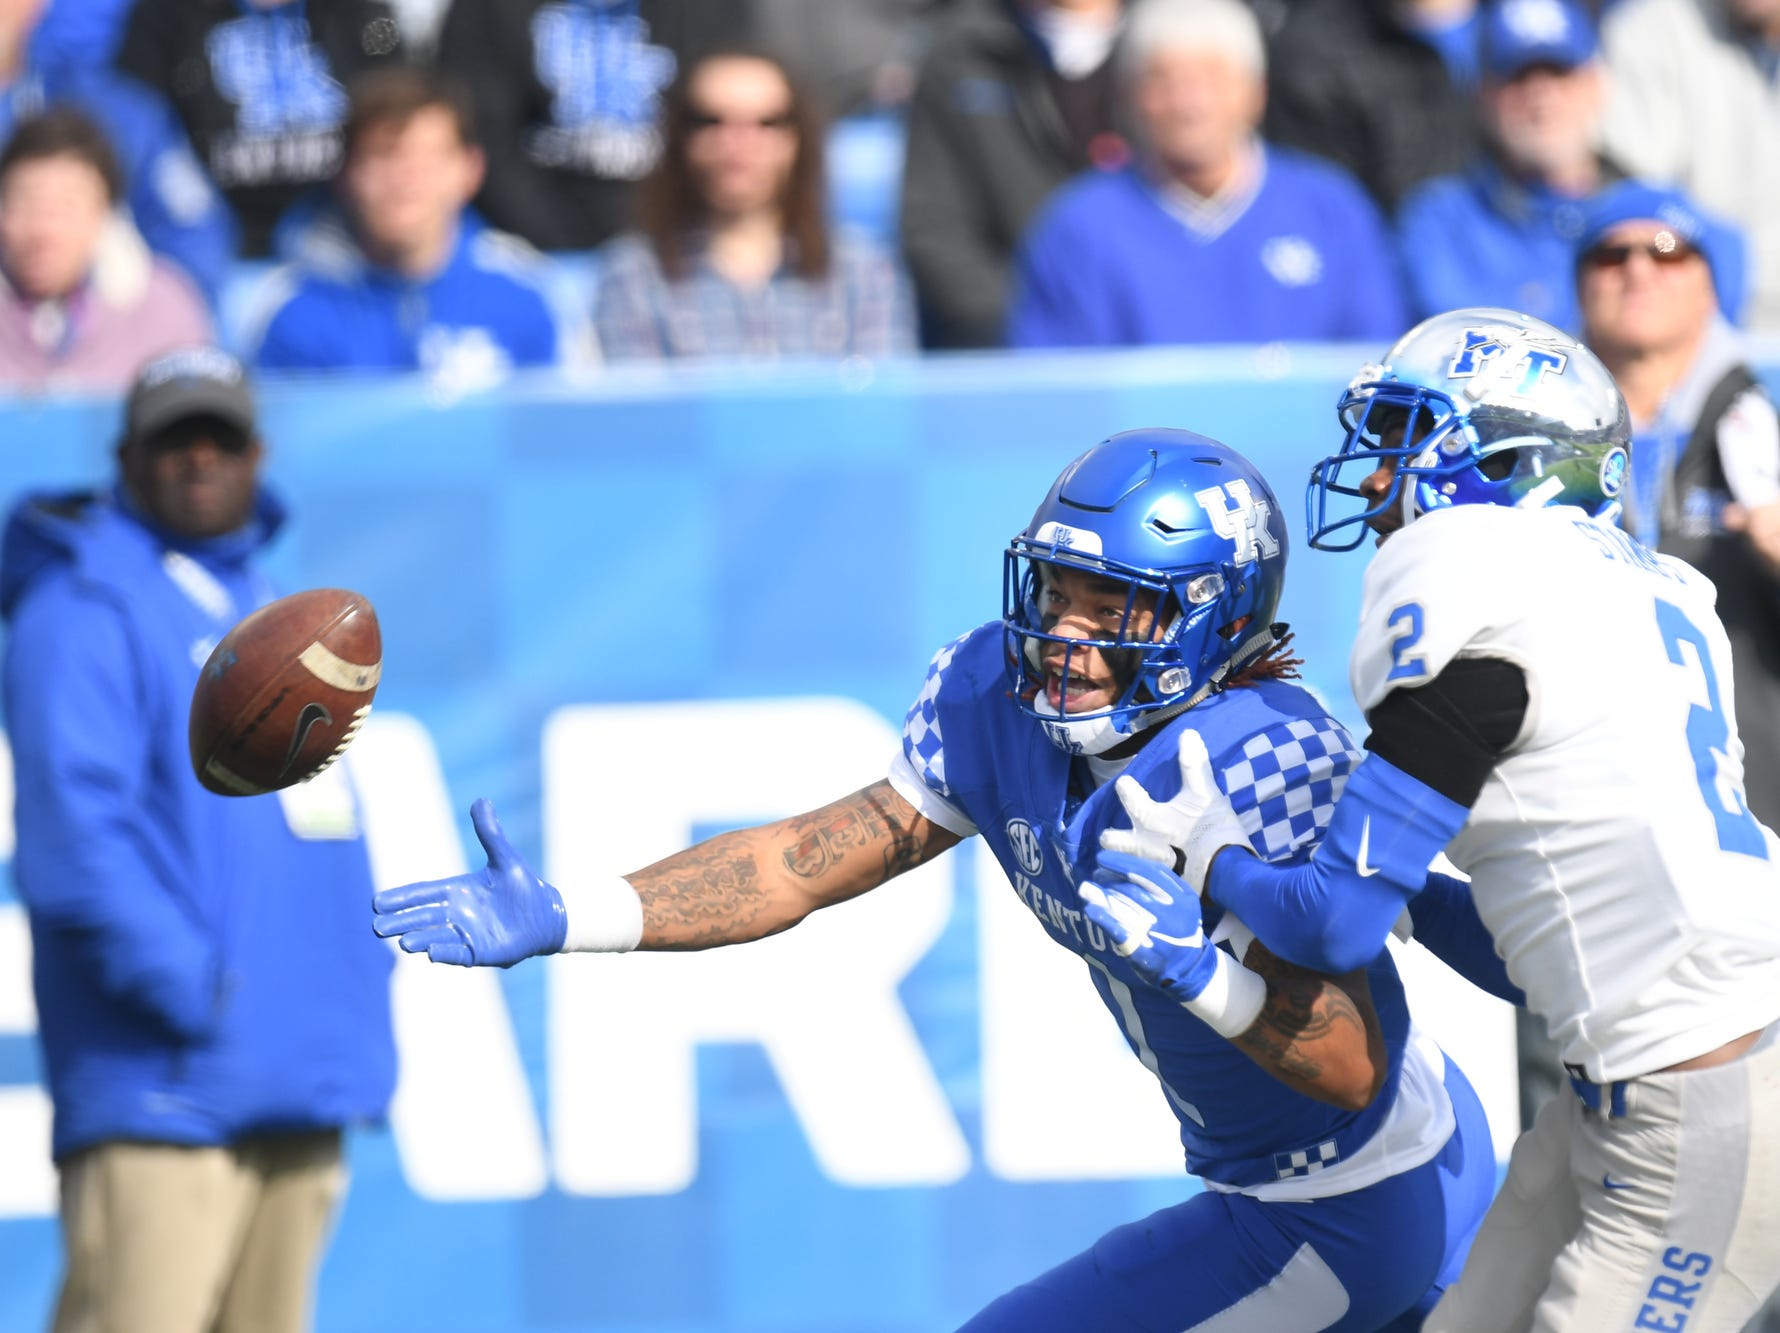 UK WR Lynn Bowden Jr. stretches for a pass during the University of Kentucky football game against Middle Tennessee at Kroger Field in Lexington, Kentucky on Saturday, November 17, 2018.